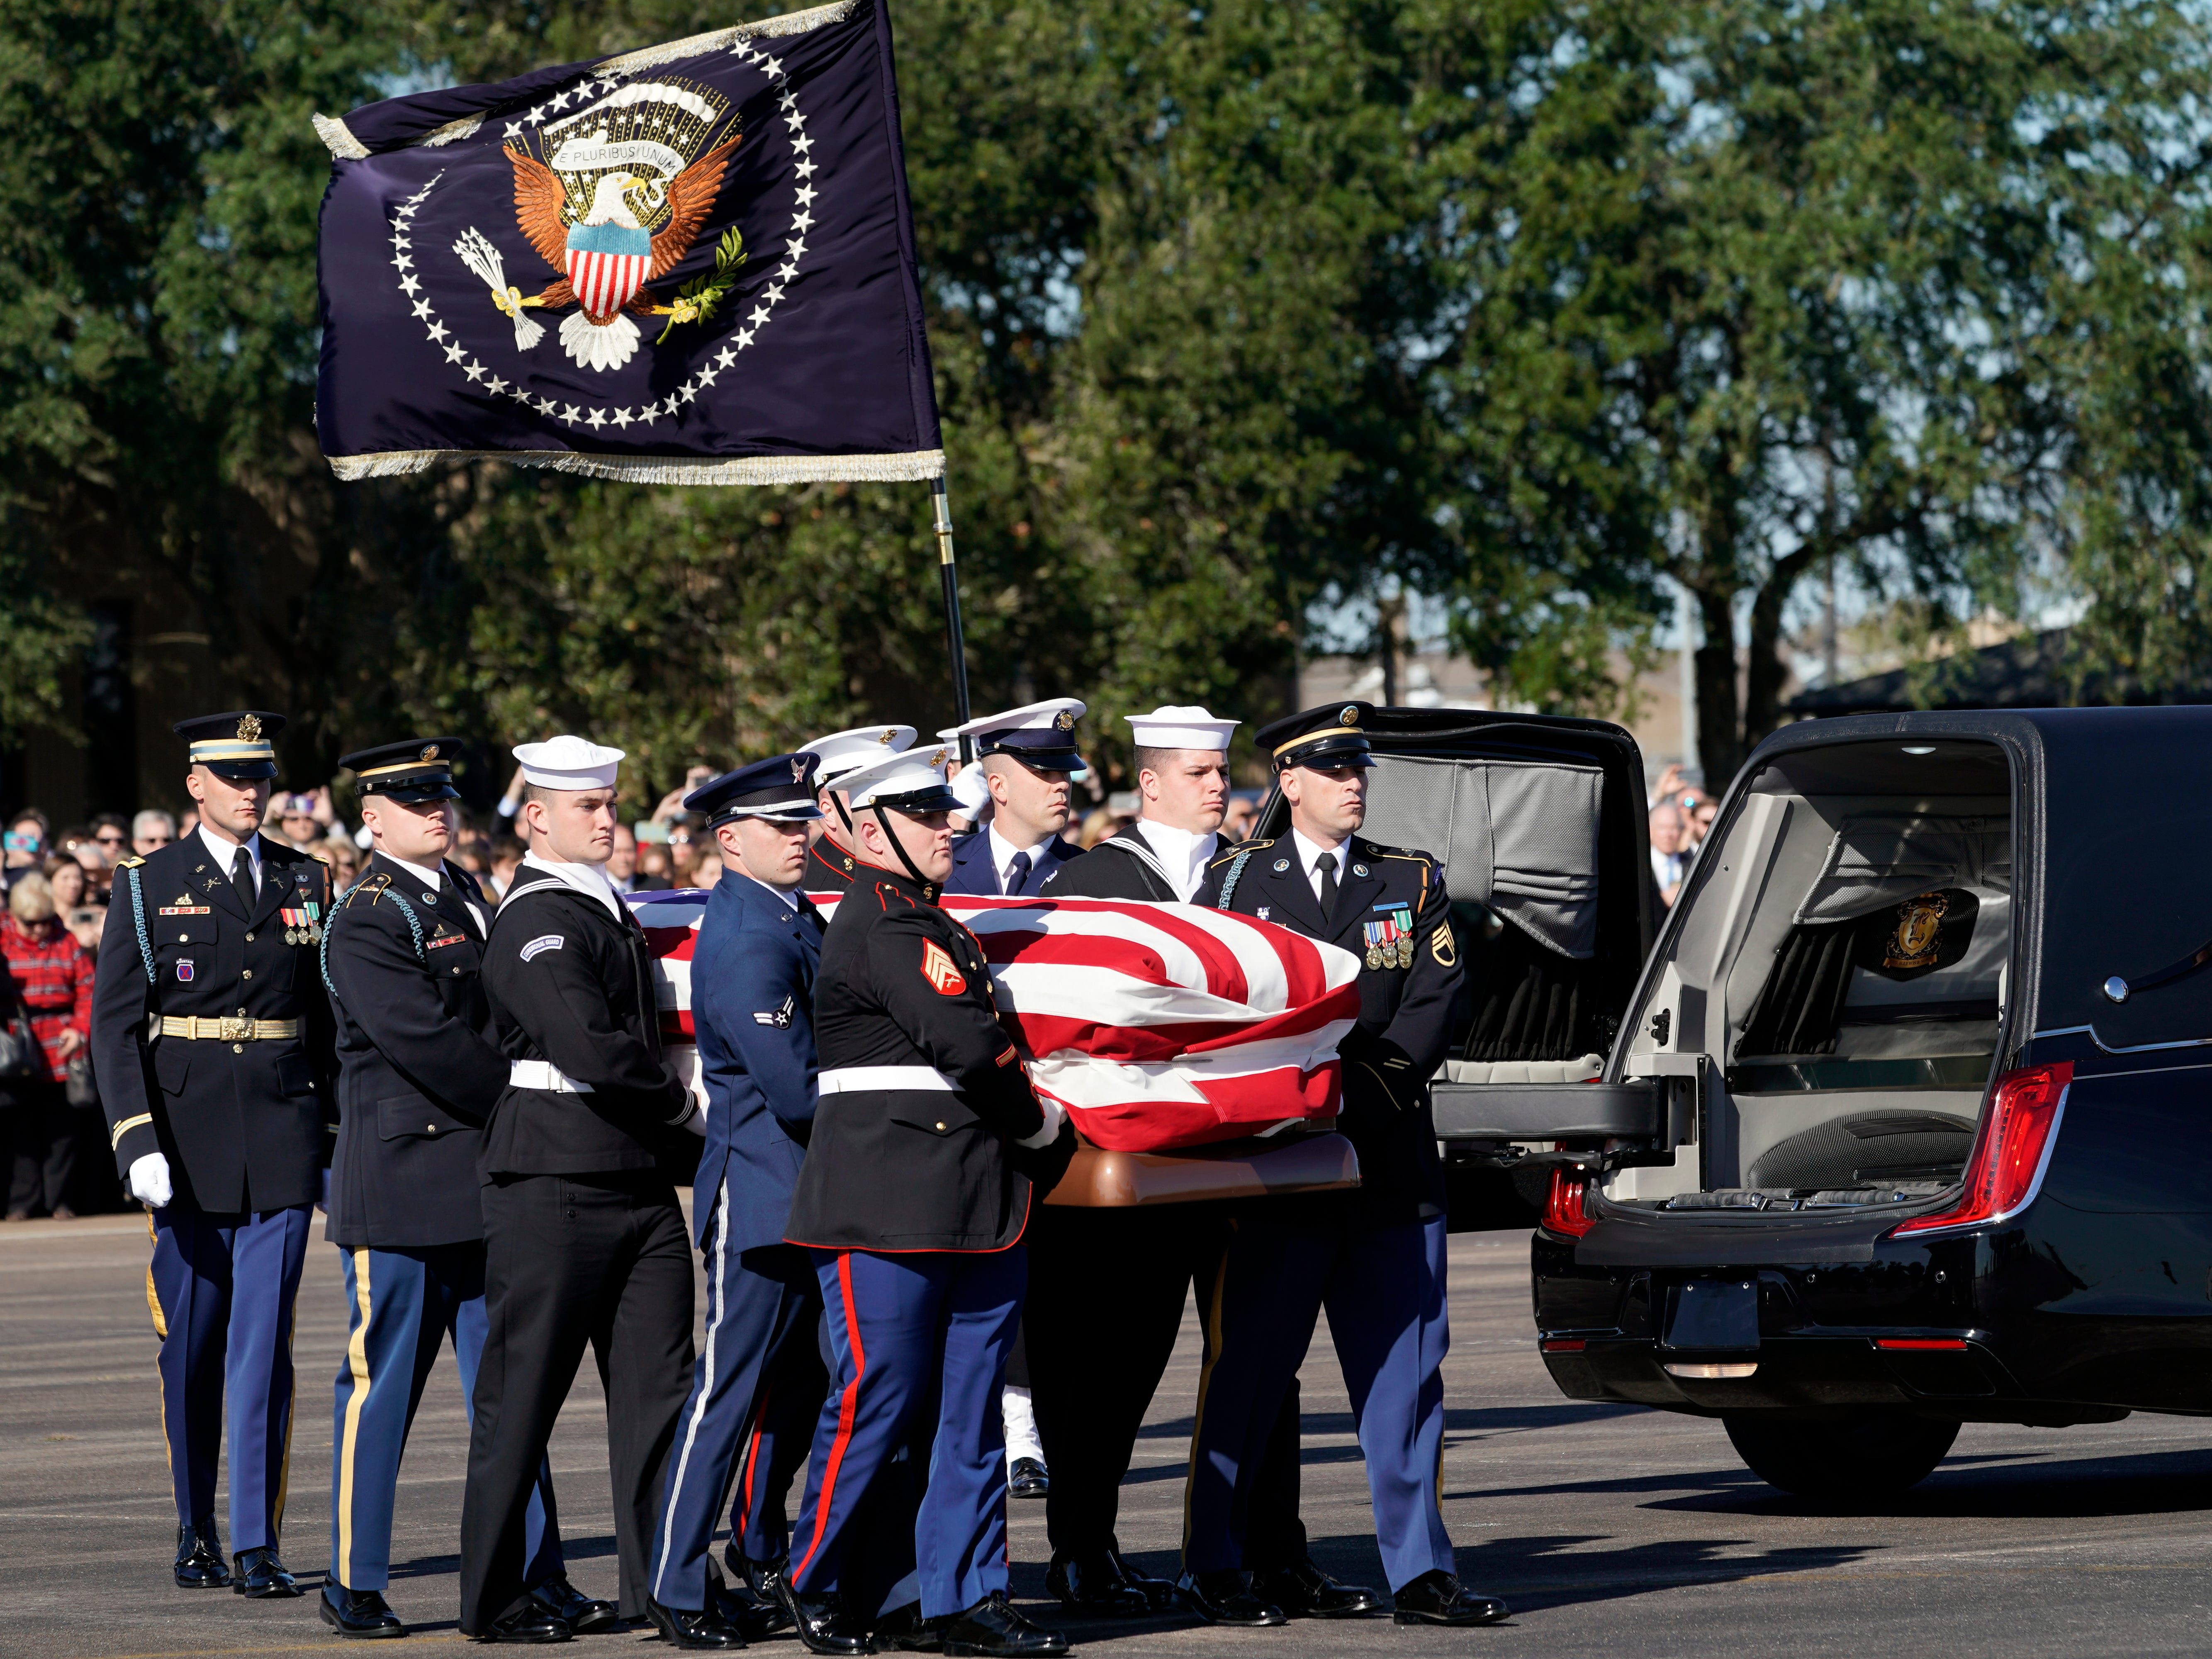 Joint services military honor guard carry the flag-draped casket of the remains of former President George H.W. Bush during a departure ceremony to Washington at Ellington Field on Dec. 3, 2018 in Houston.